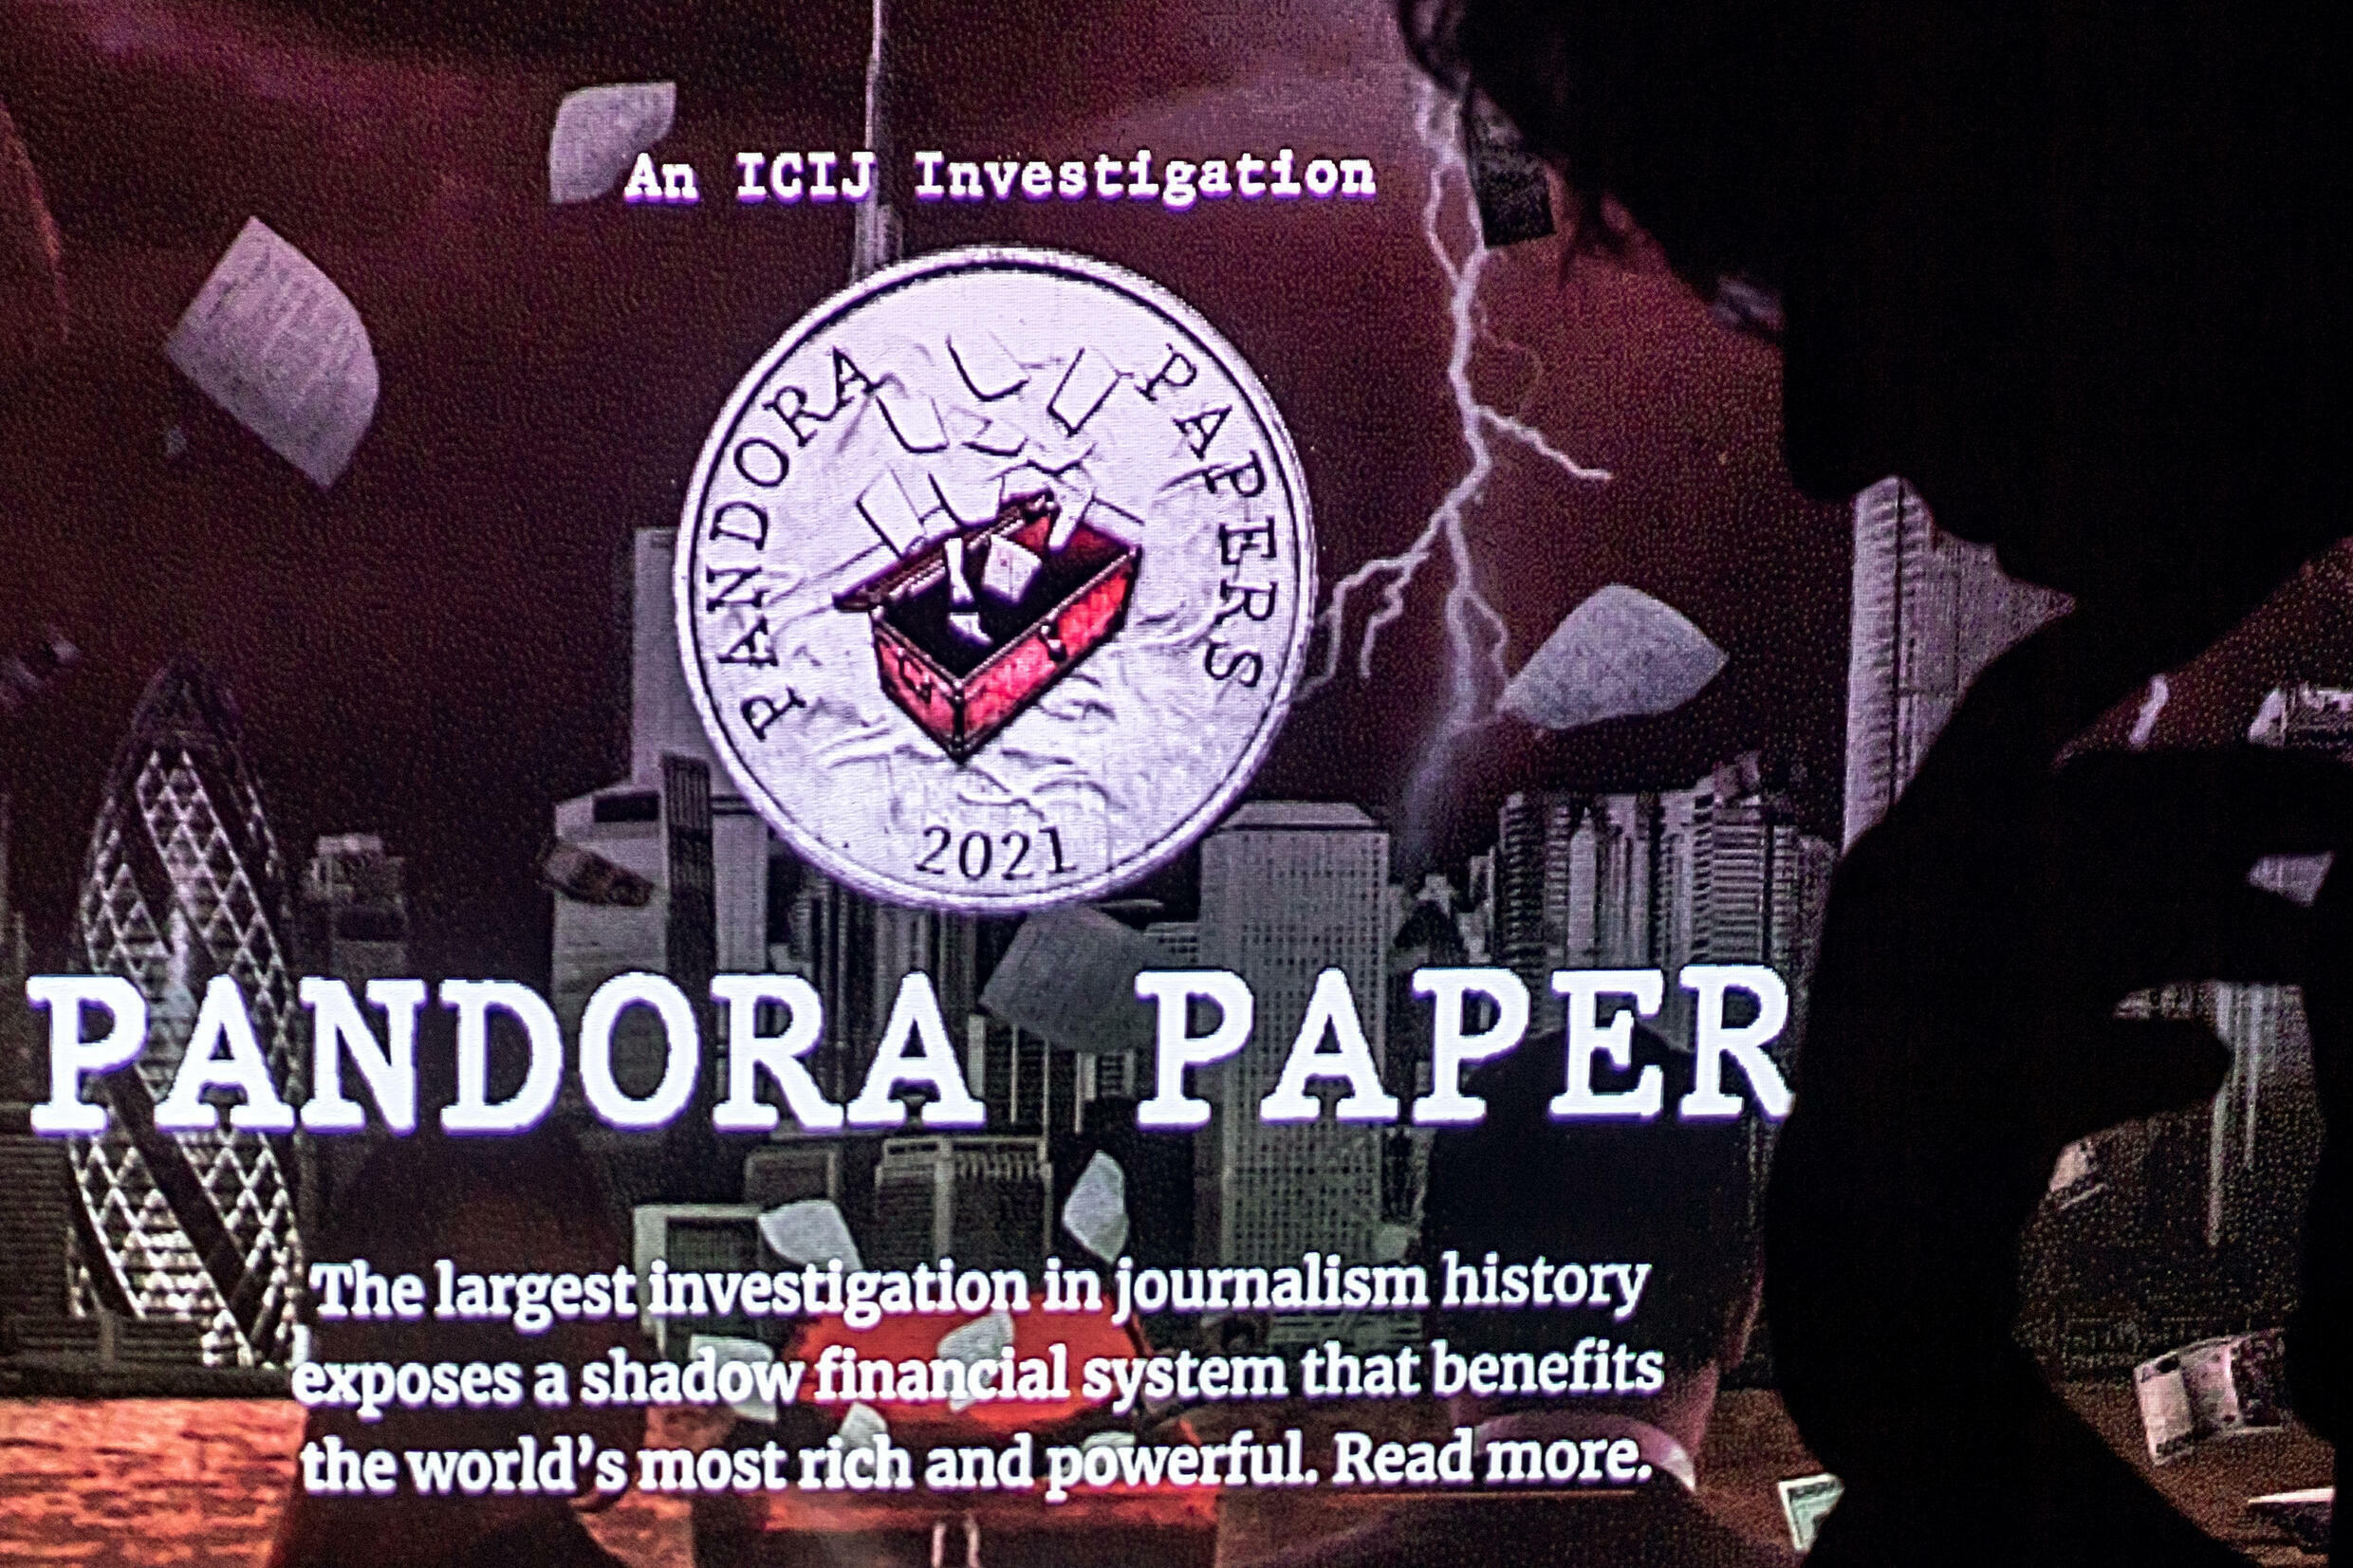 The Pandora Papers came from a massive leak of documents